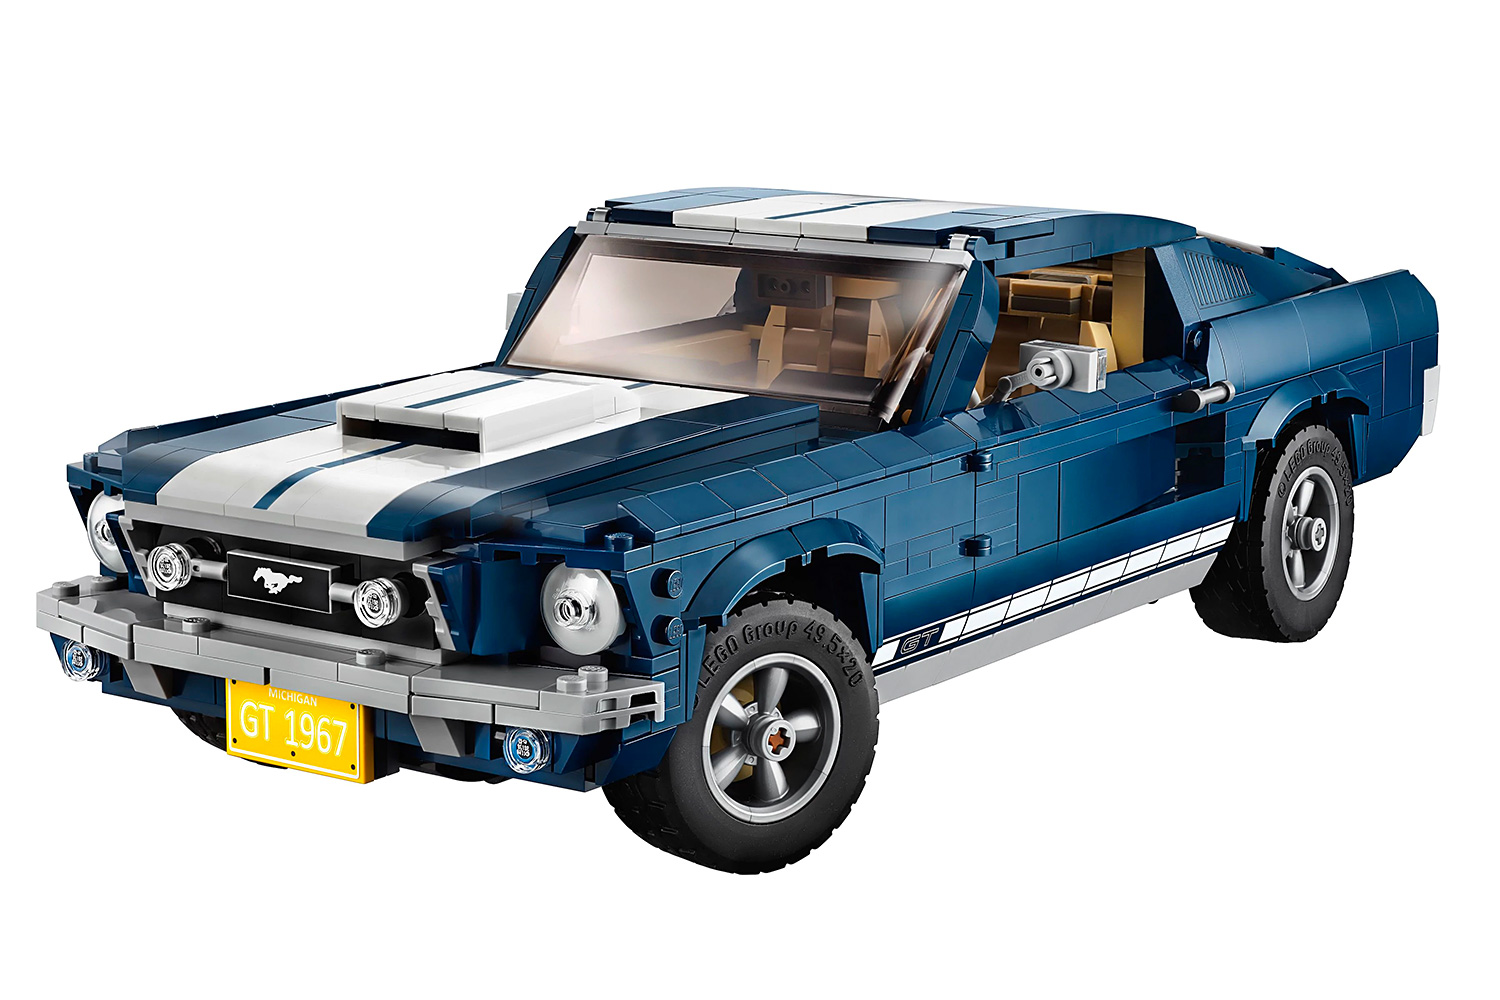 Lego Rolls Out a 1471-Piece Ford Mustang Fastback Kit at werd.com